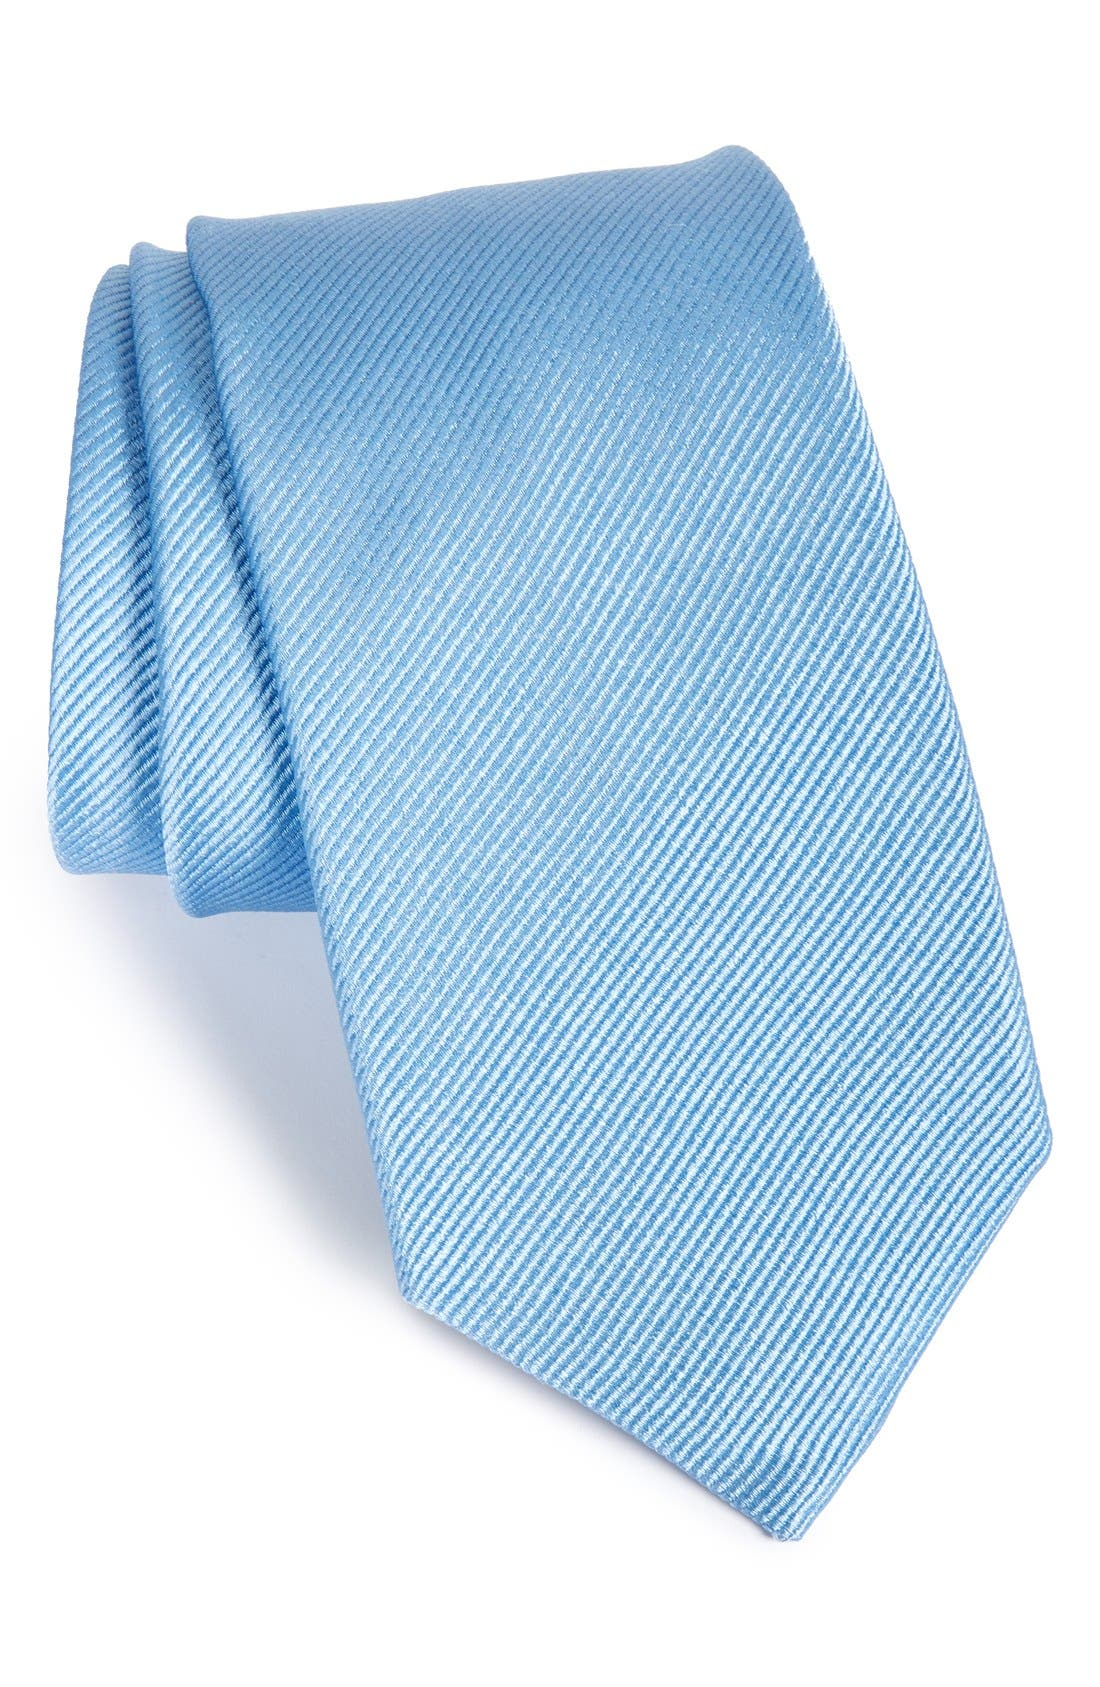 Solid Silk Tie,                             Main thumbnail 1, color,                             MEDIUM BLUE